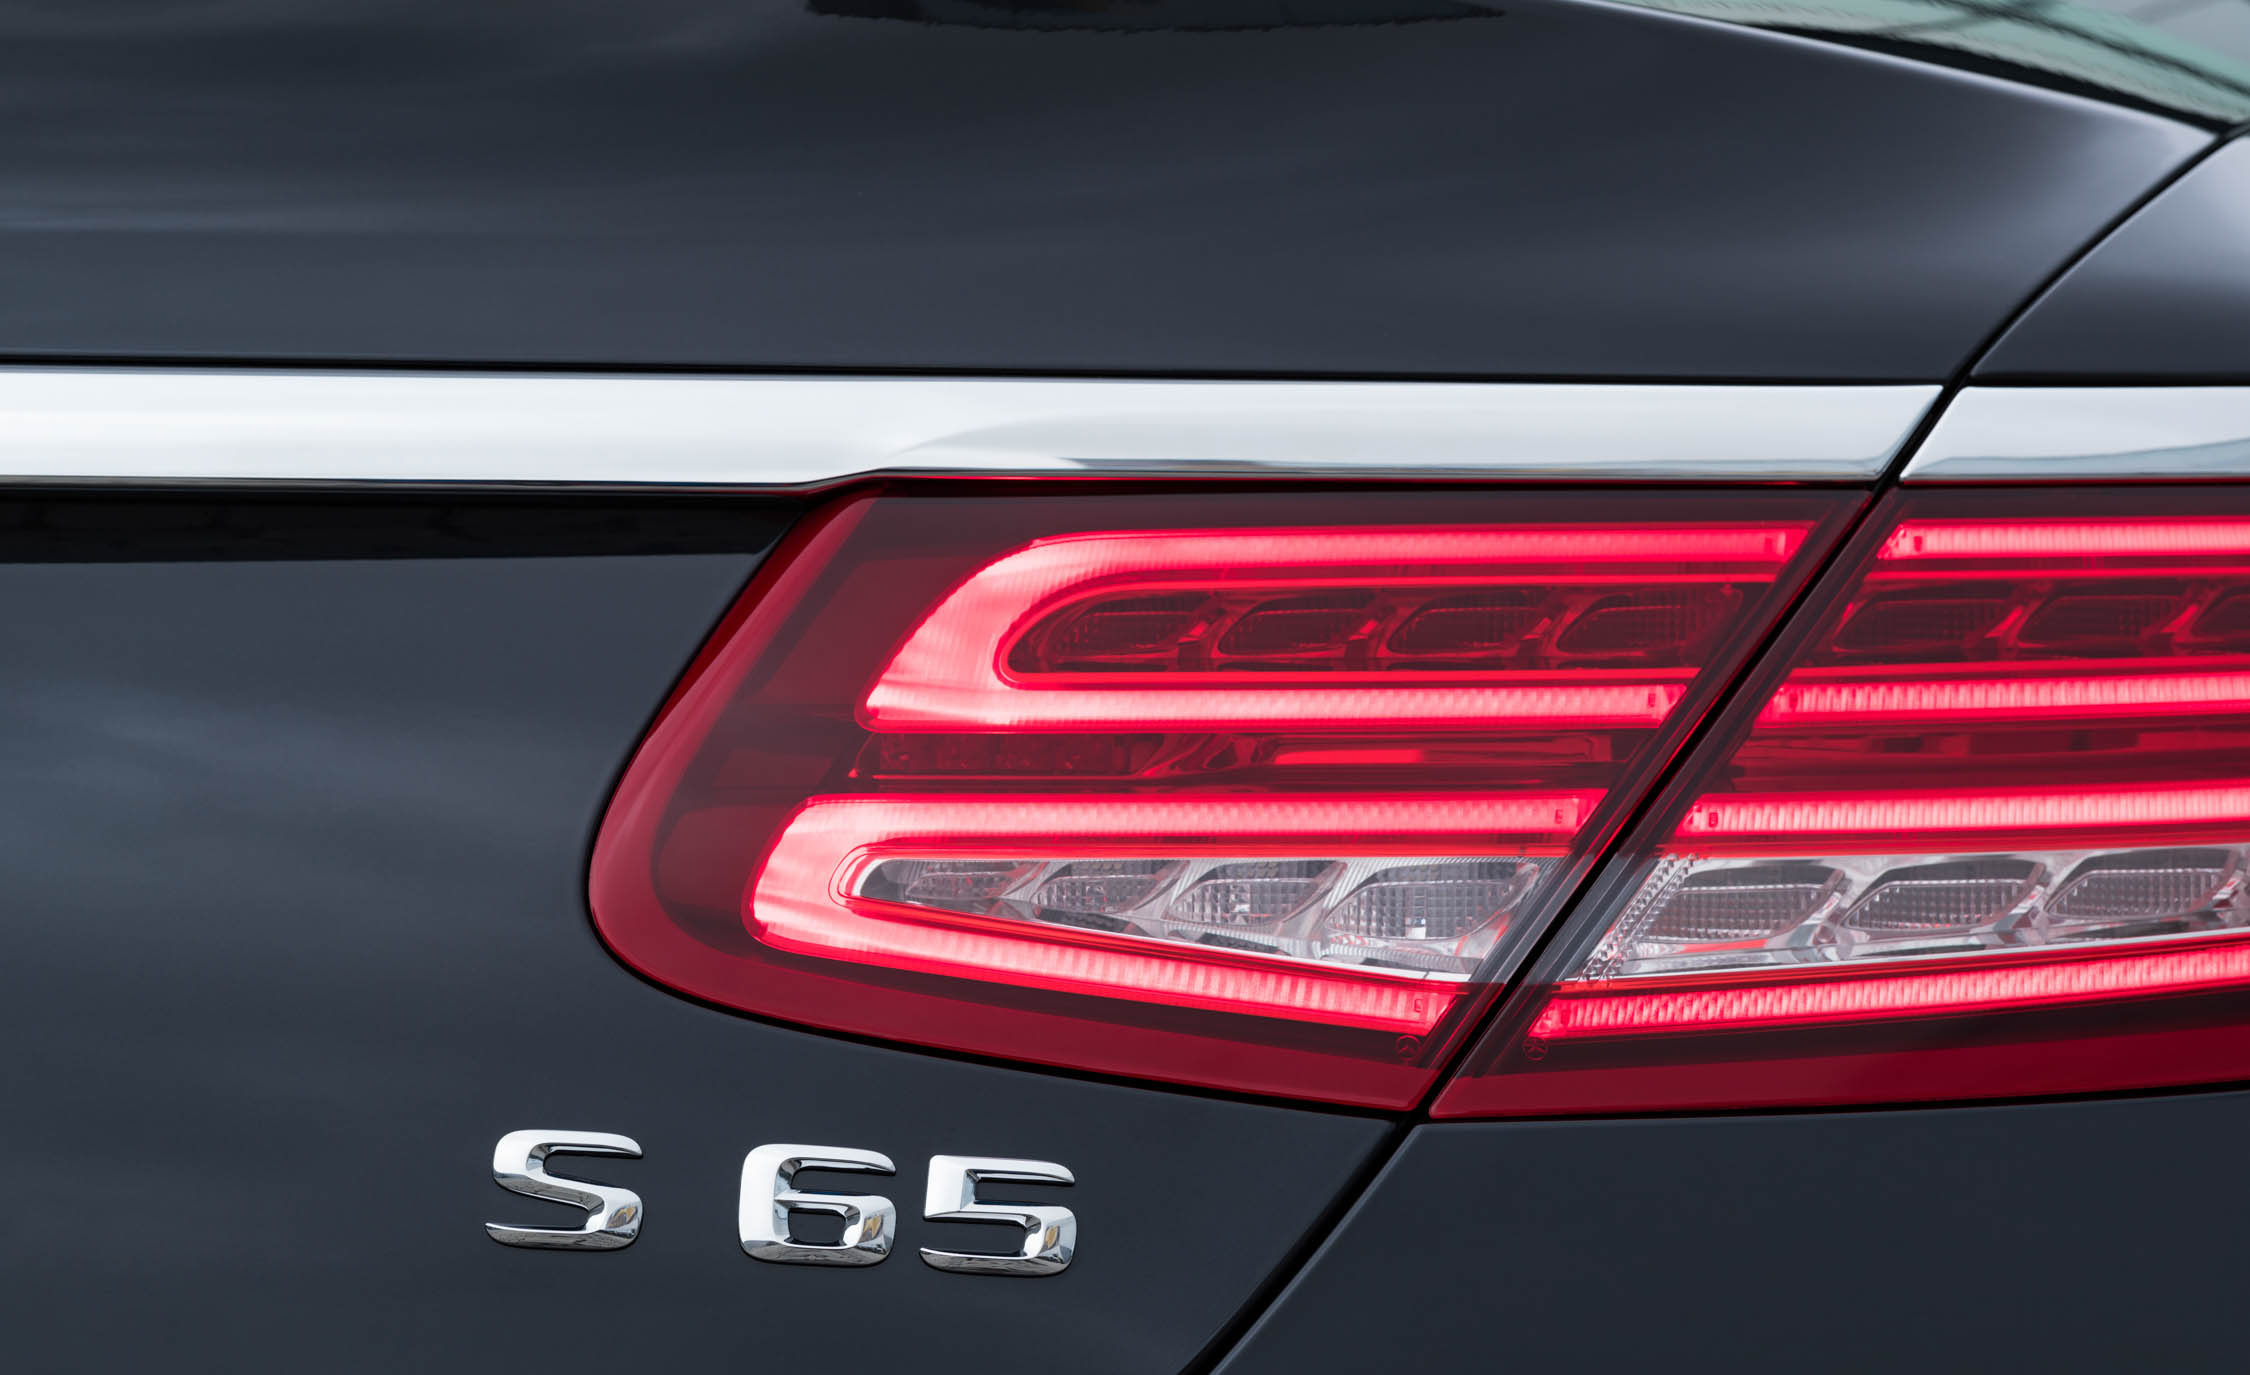 2017 Mercedes Amg S65 Cabriolet Exterior View Taillight (Photo 10 of 15)